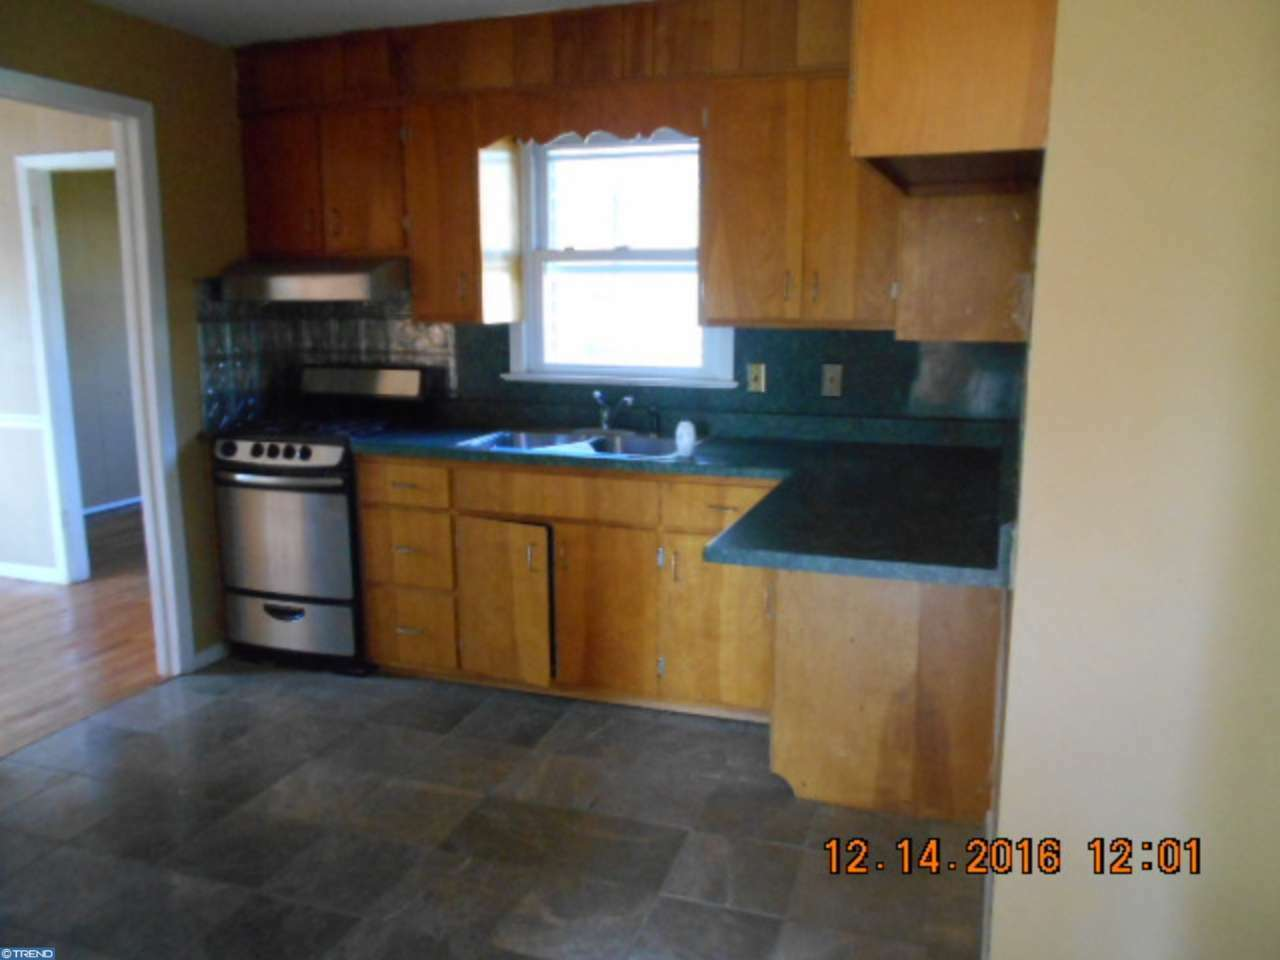 82 W Maple Ave, Morrisville, PA - USA (photo 5)